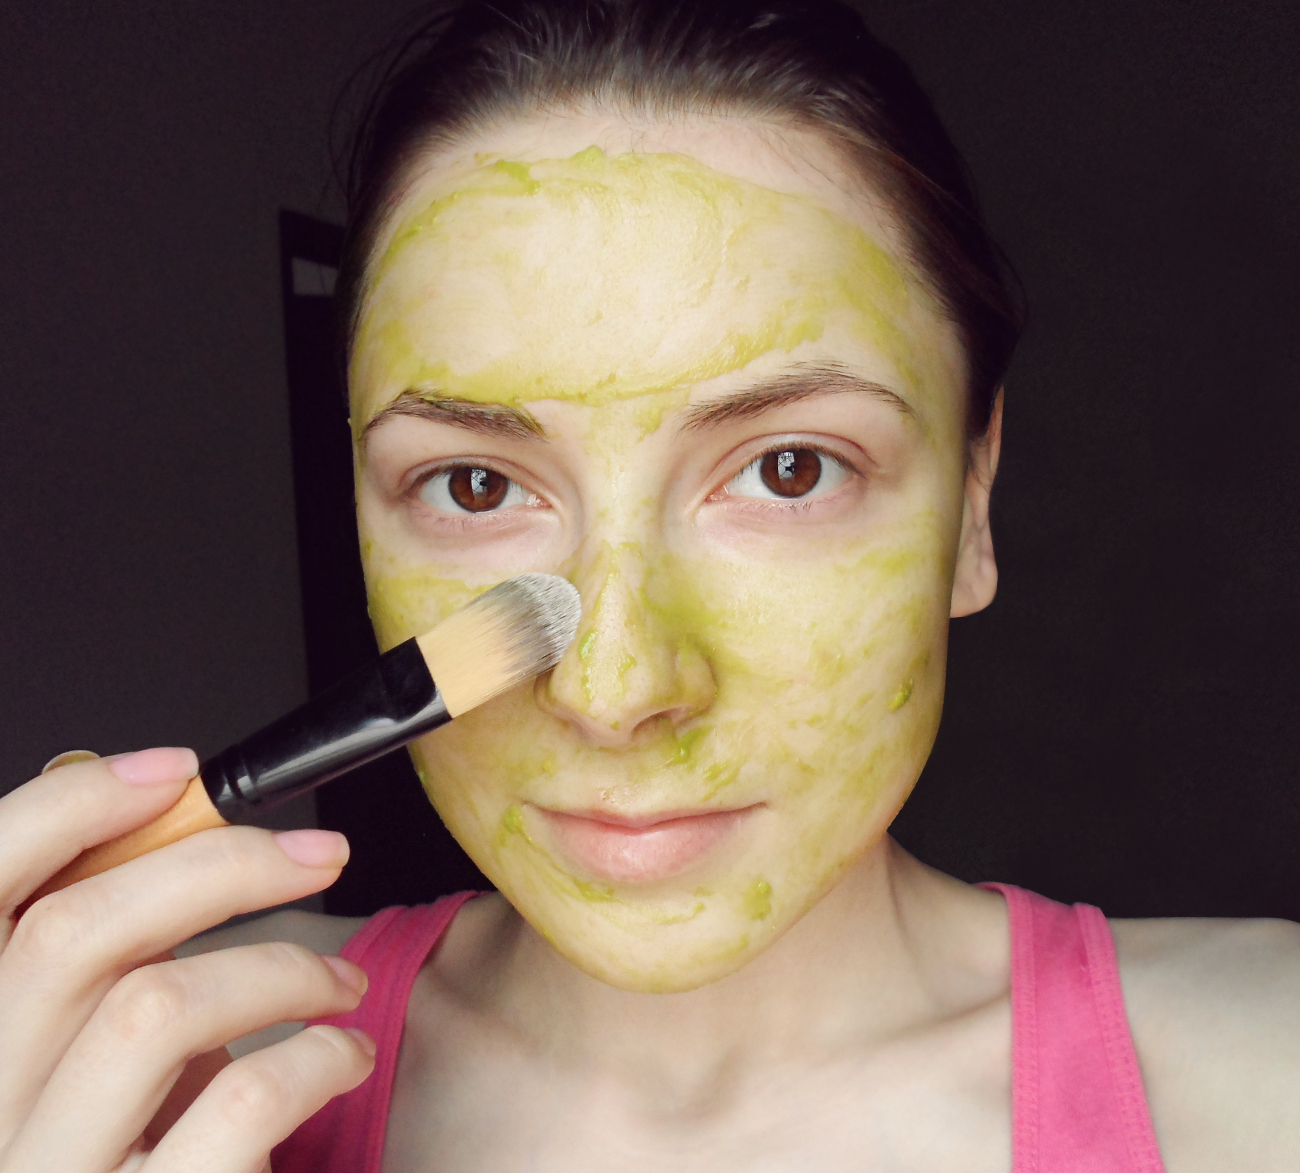 facial skin care homemade recipes masks fruit masks all skin types DIY at home liz breygel blogger Homemade Organic Avocado Face Mask liz breygel janaury girl blogger